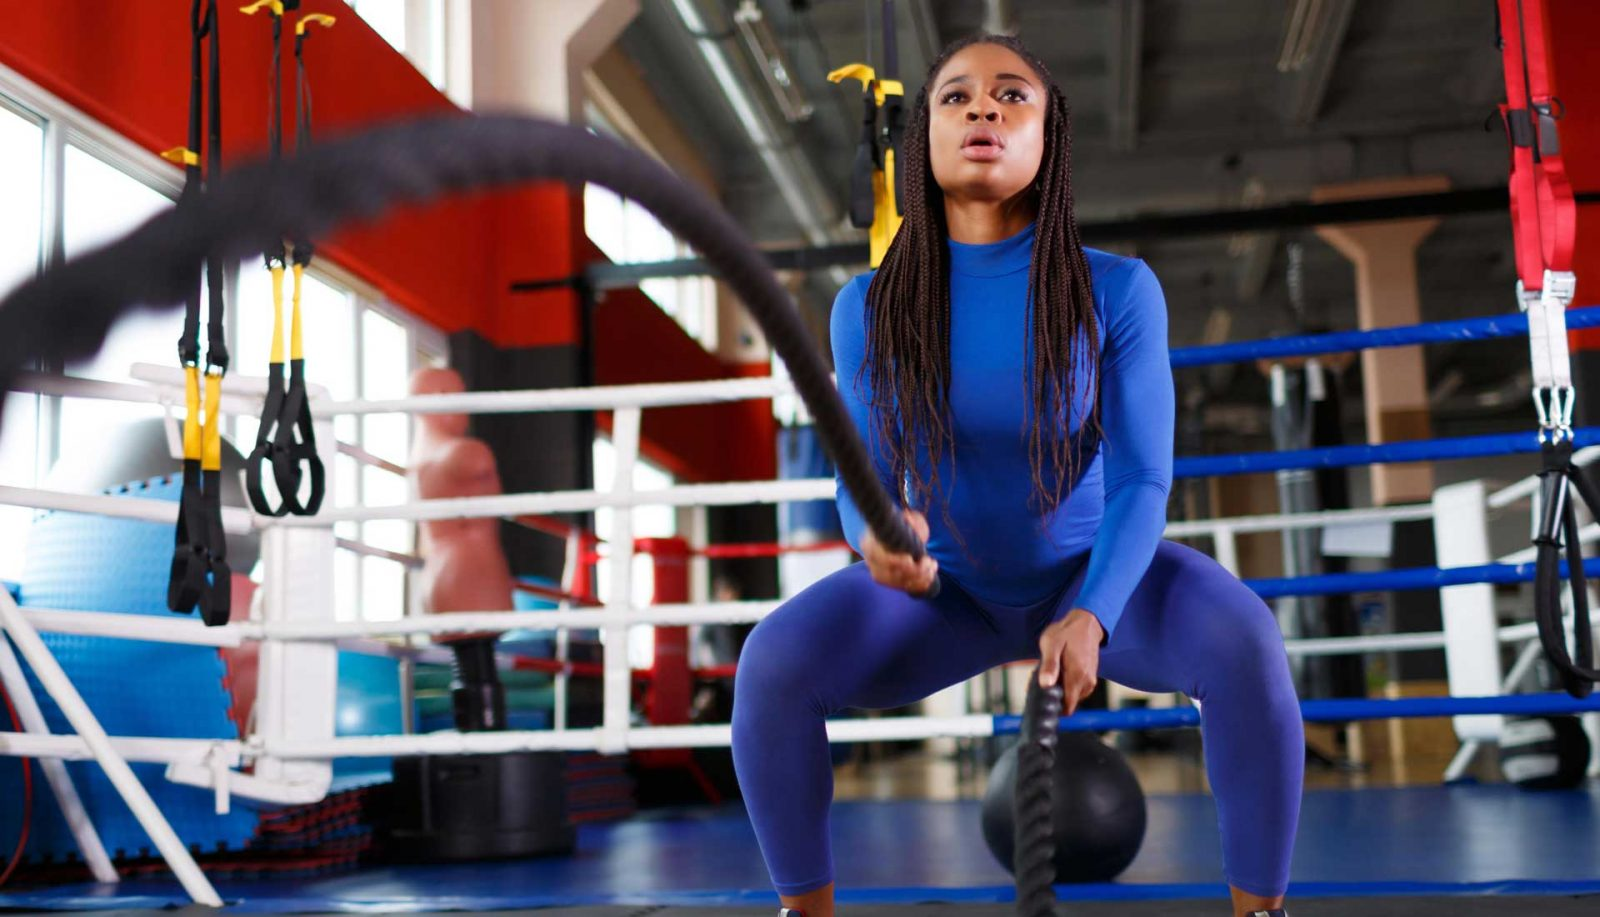 Black woman with braids exercising in the gym with battle ropes